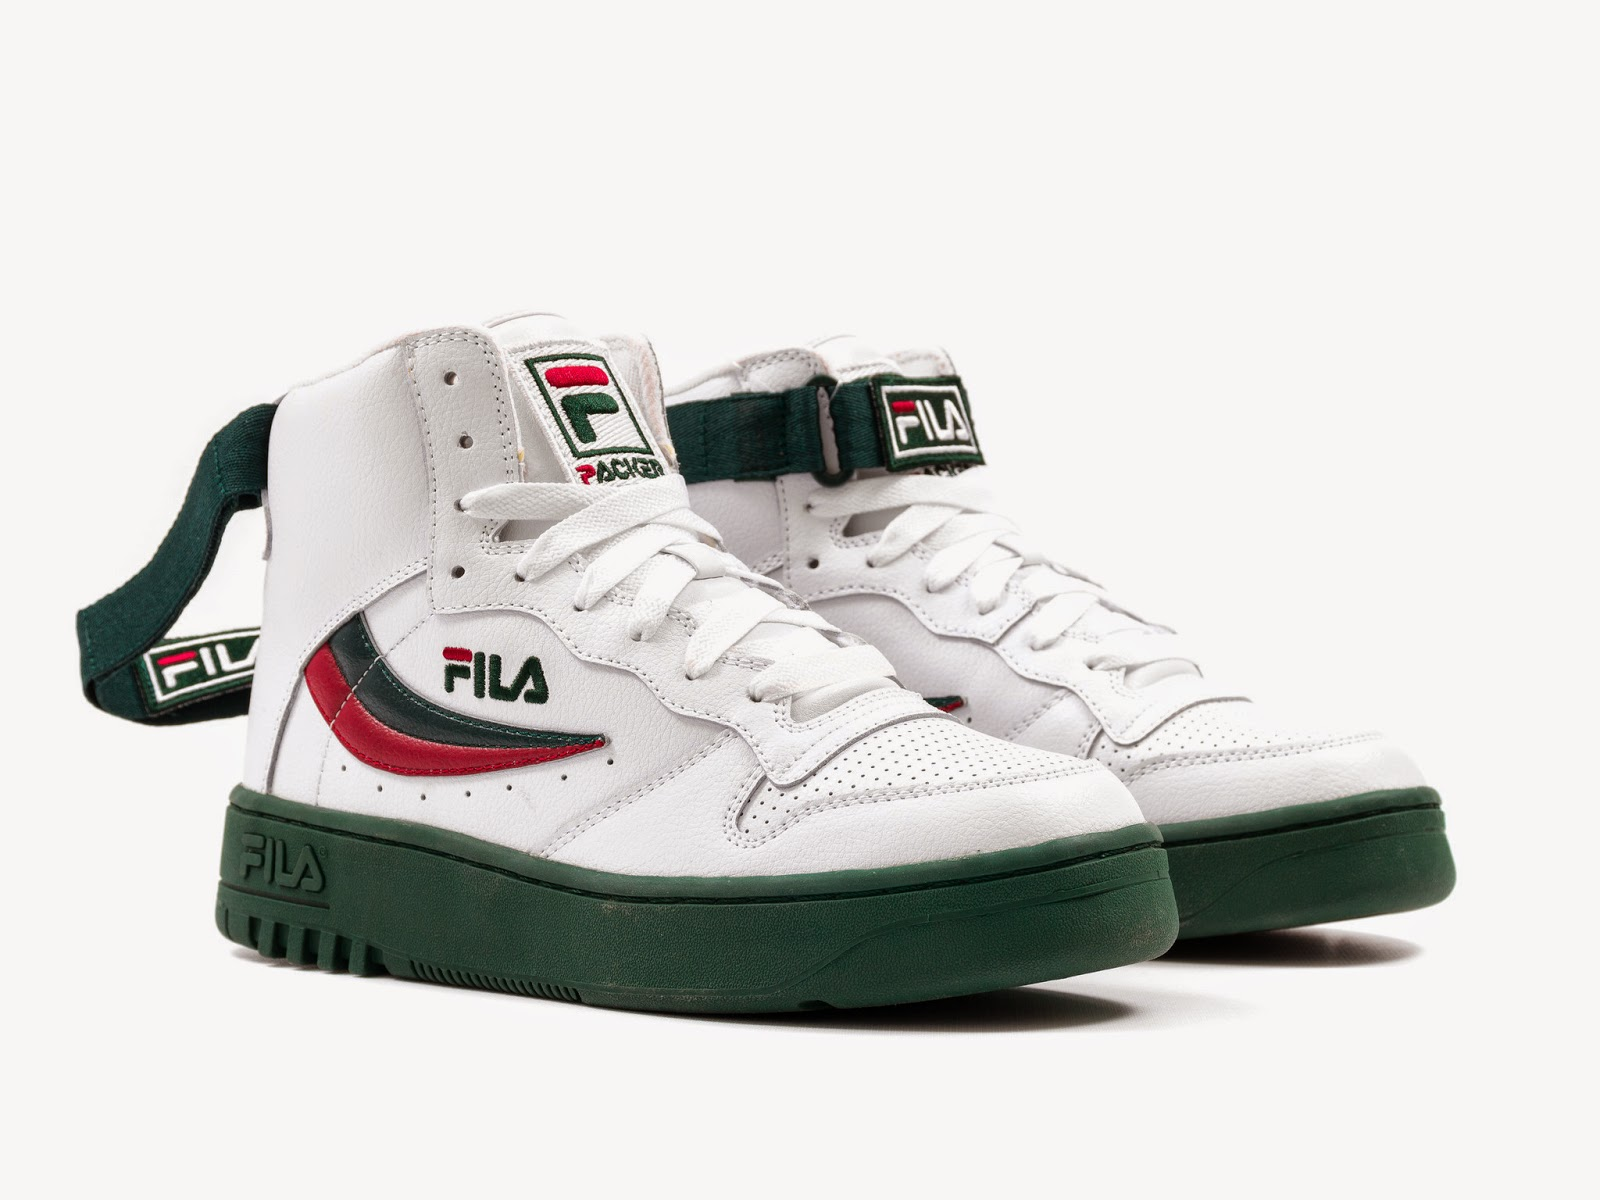 """b2dcd94cc23d The Packer Shoes x Fila FX-100 """"The O.G."""" is the model featured as this  collaborative project utilizes the storied Fila FX-100 model as a muse"""